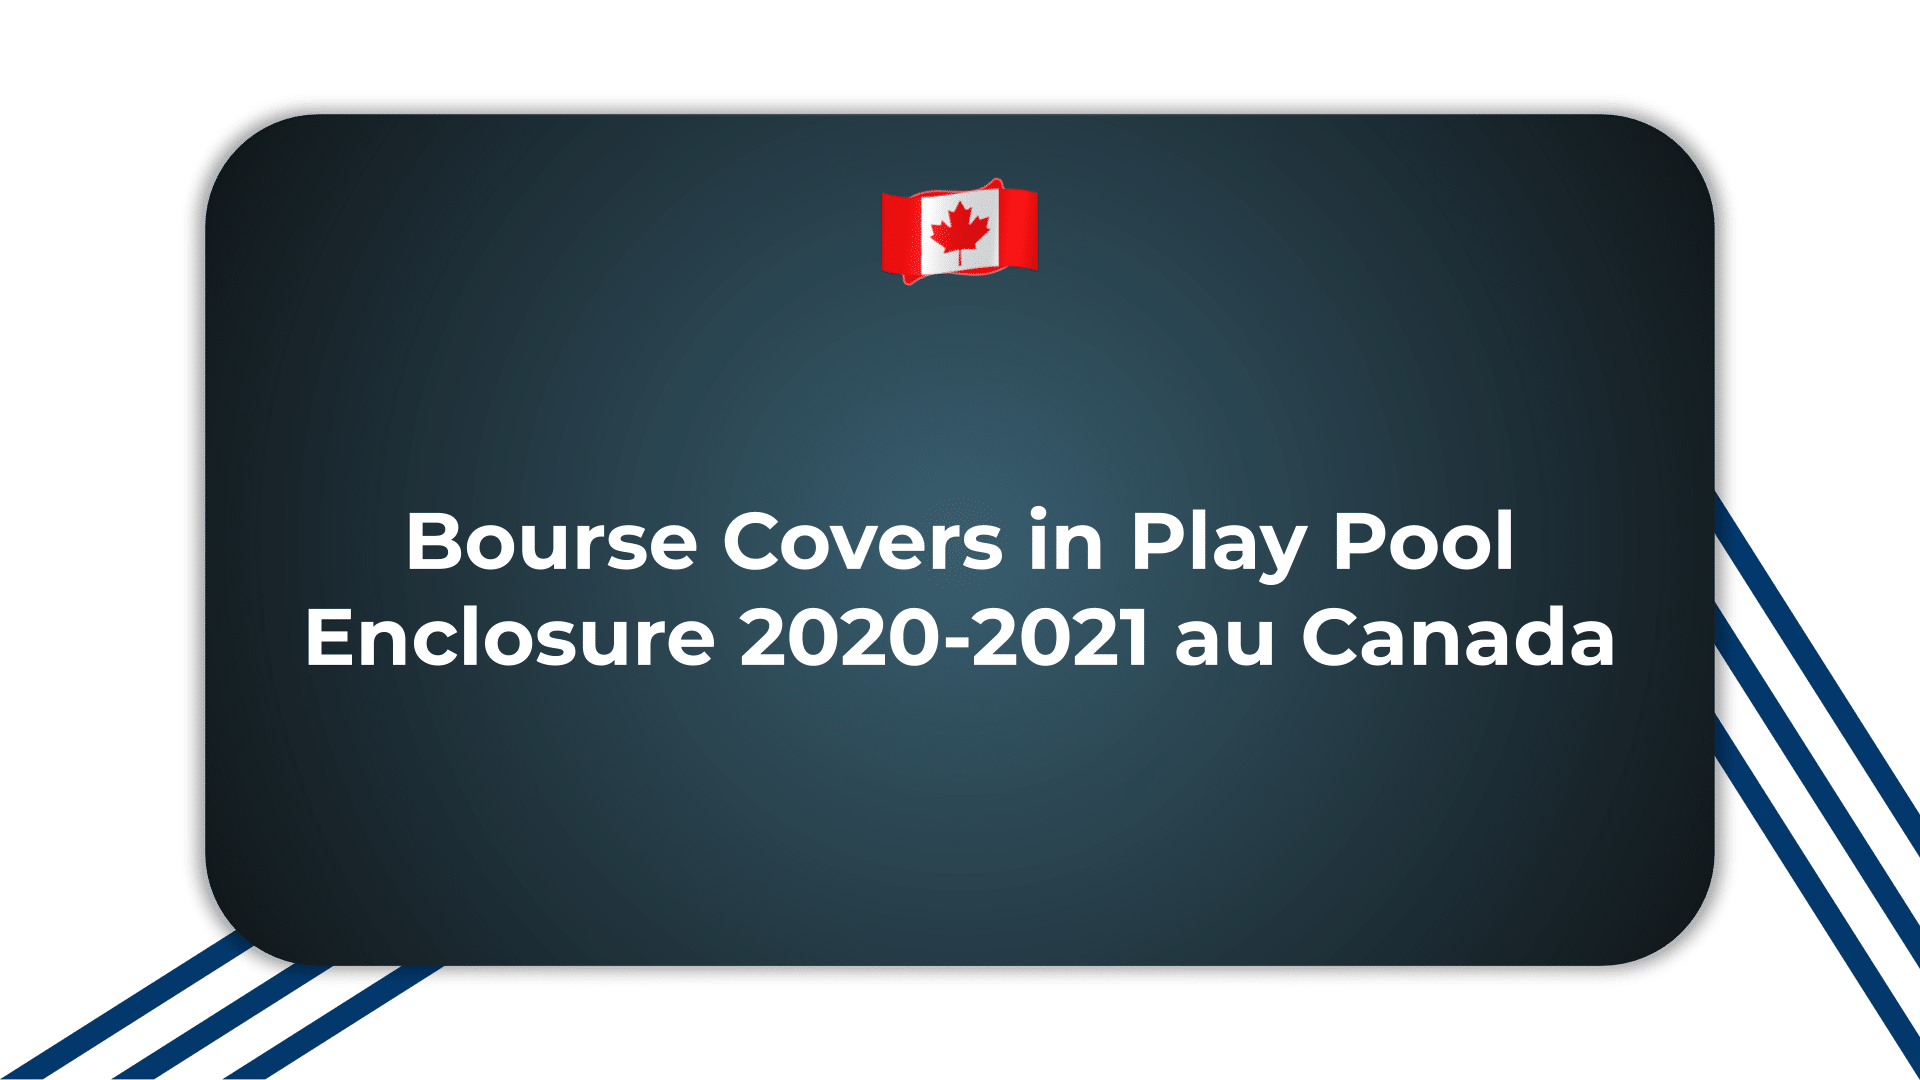 Bourse Covers in Play Pool Enclosure